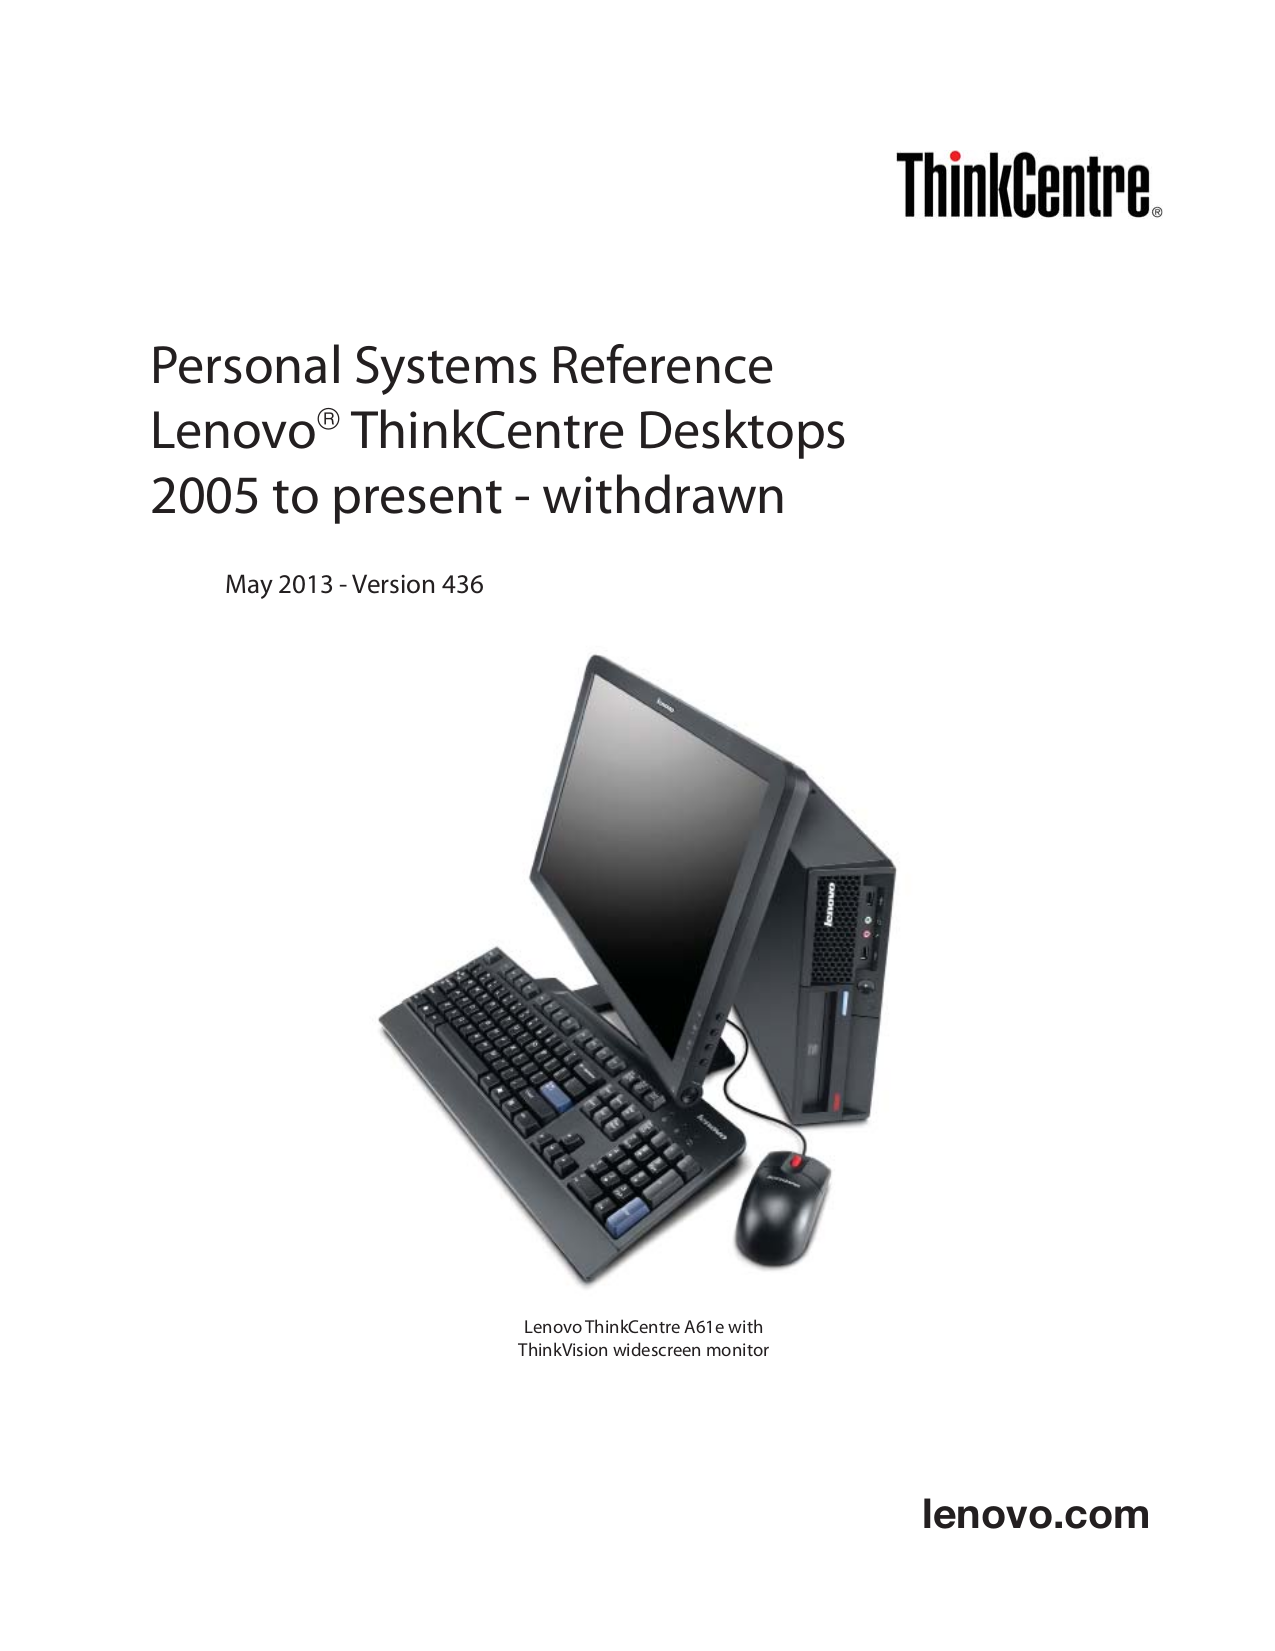 pdf for Lenovo Desktop ThinkCentre M52 8215 manual